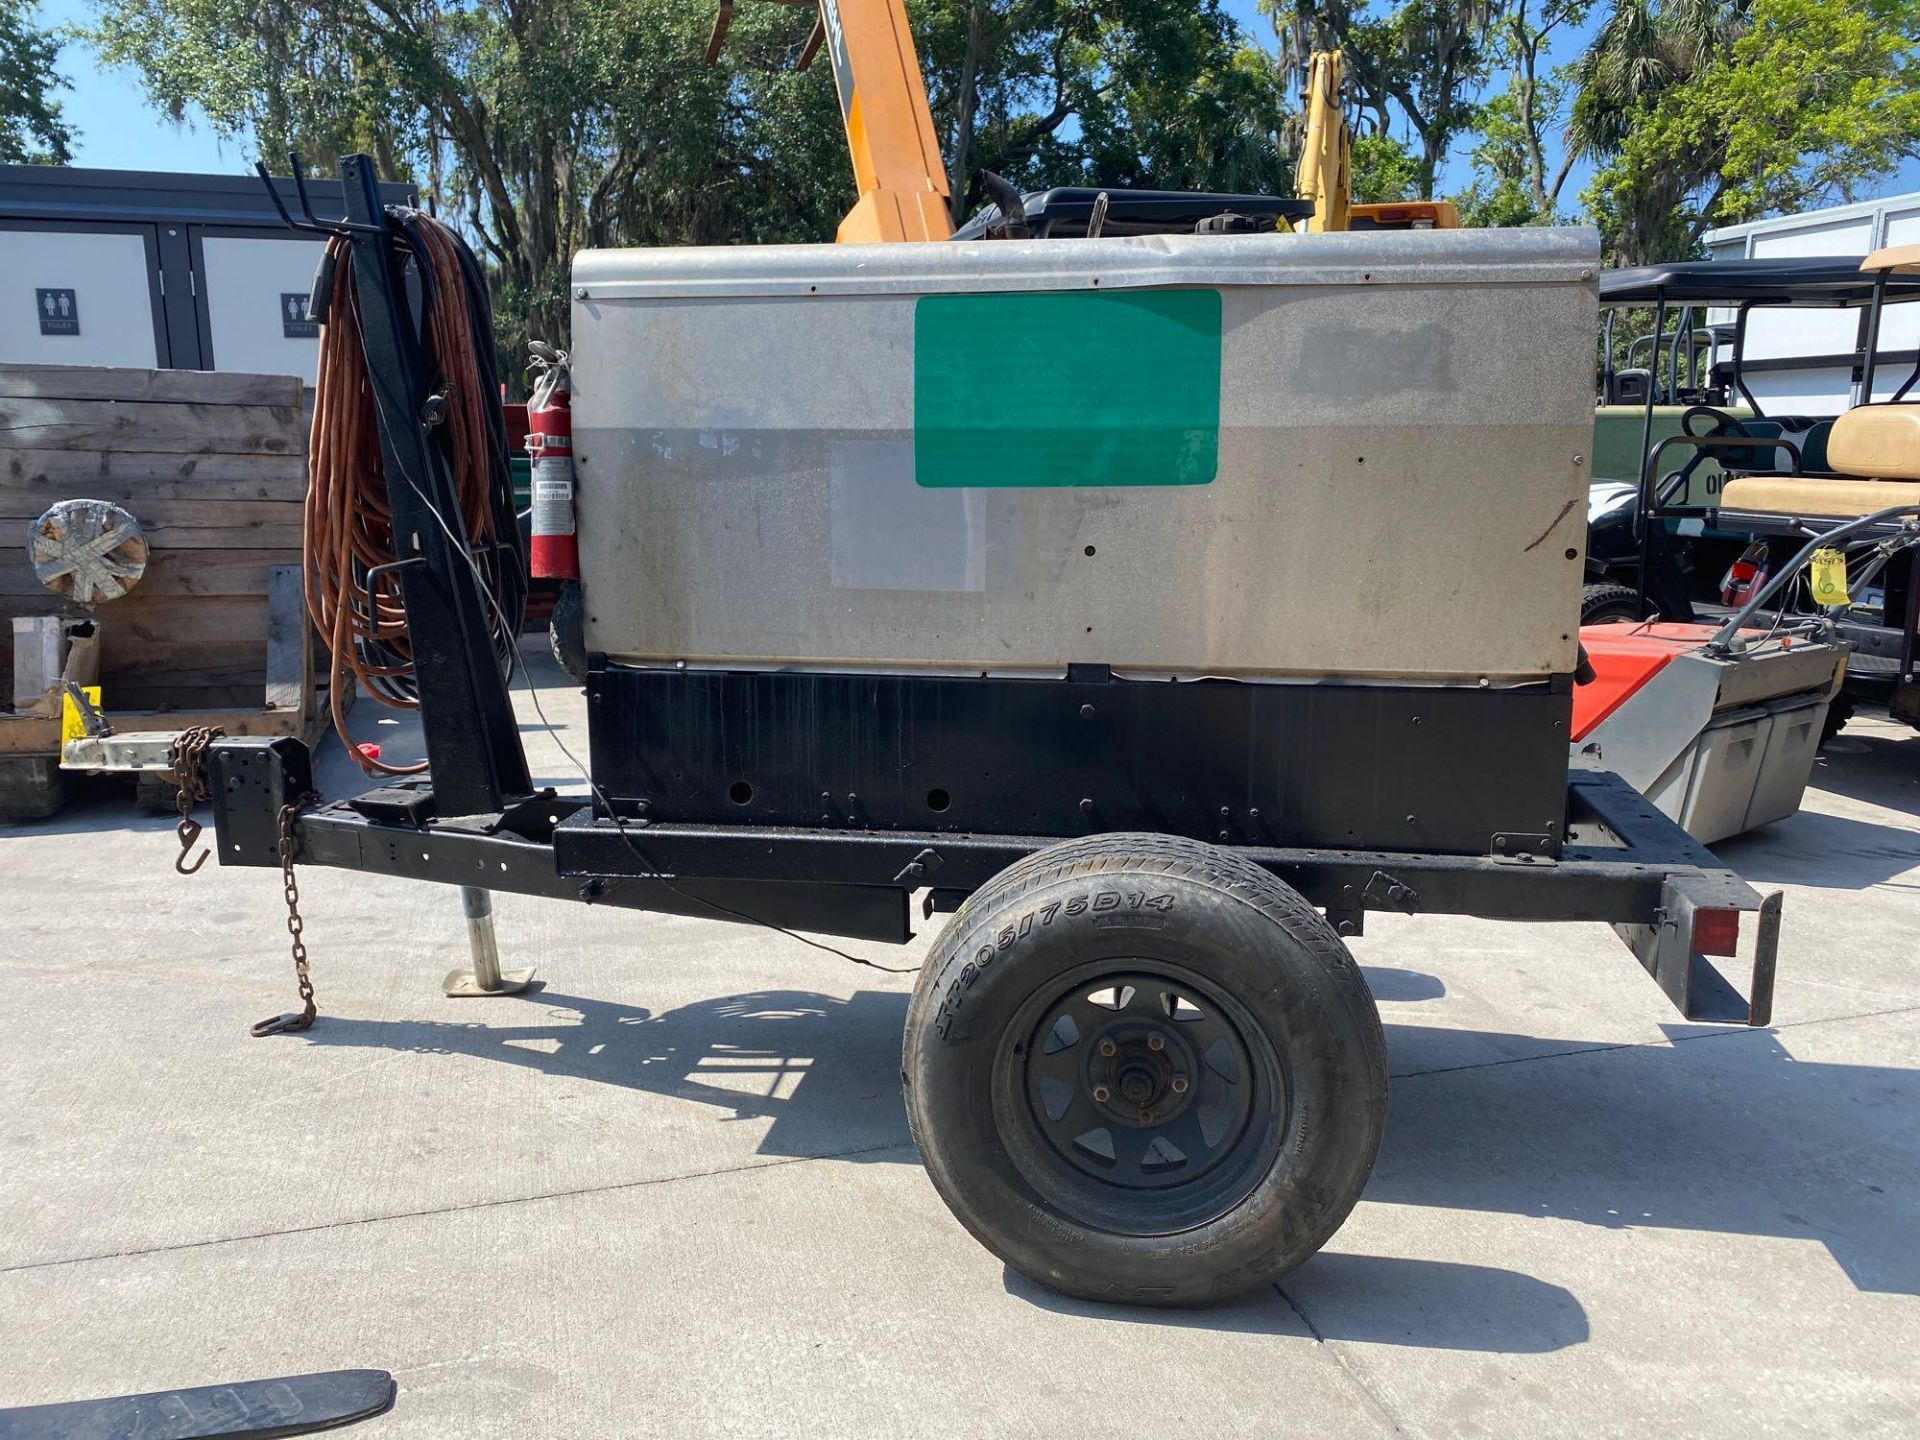 Lot 188 - LINCOLN ELECTRIC VANTAGE 300 WELDER, TRAILER MOUNTED, RUNS AND OPERATES